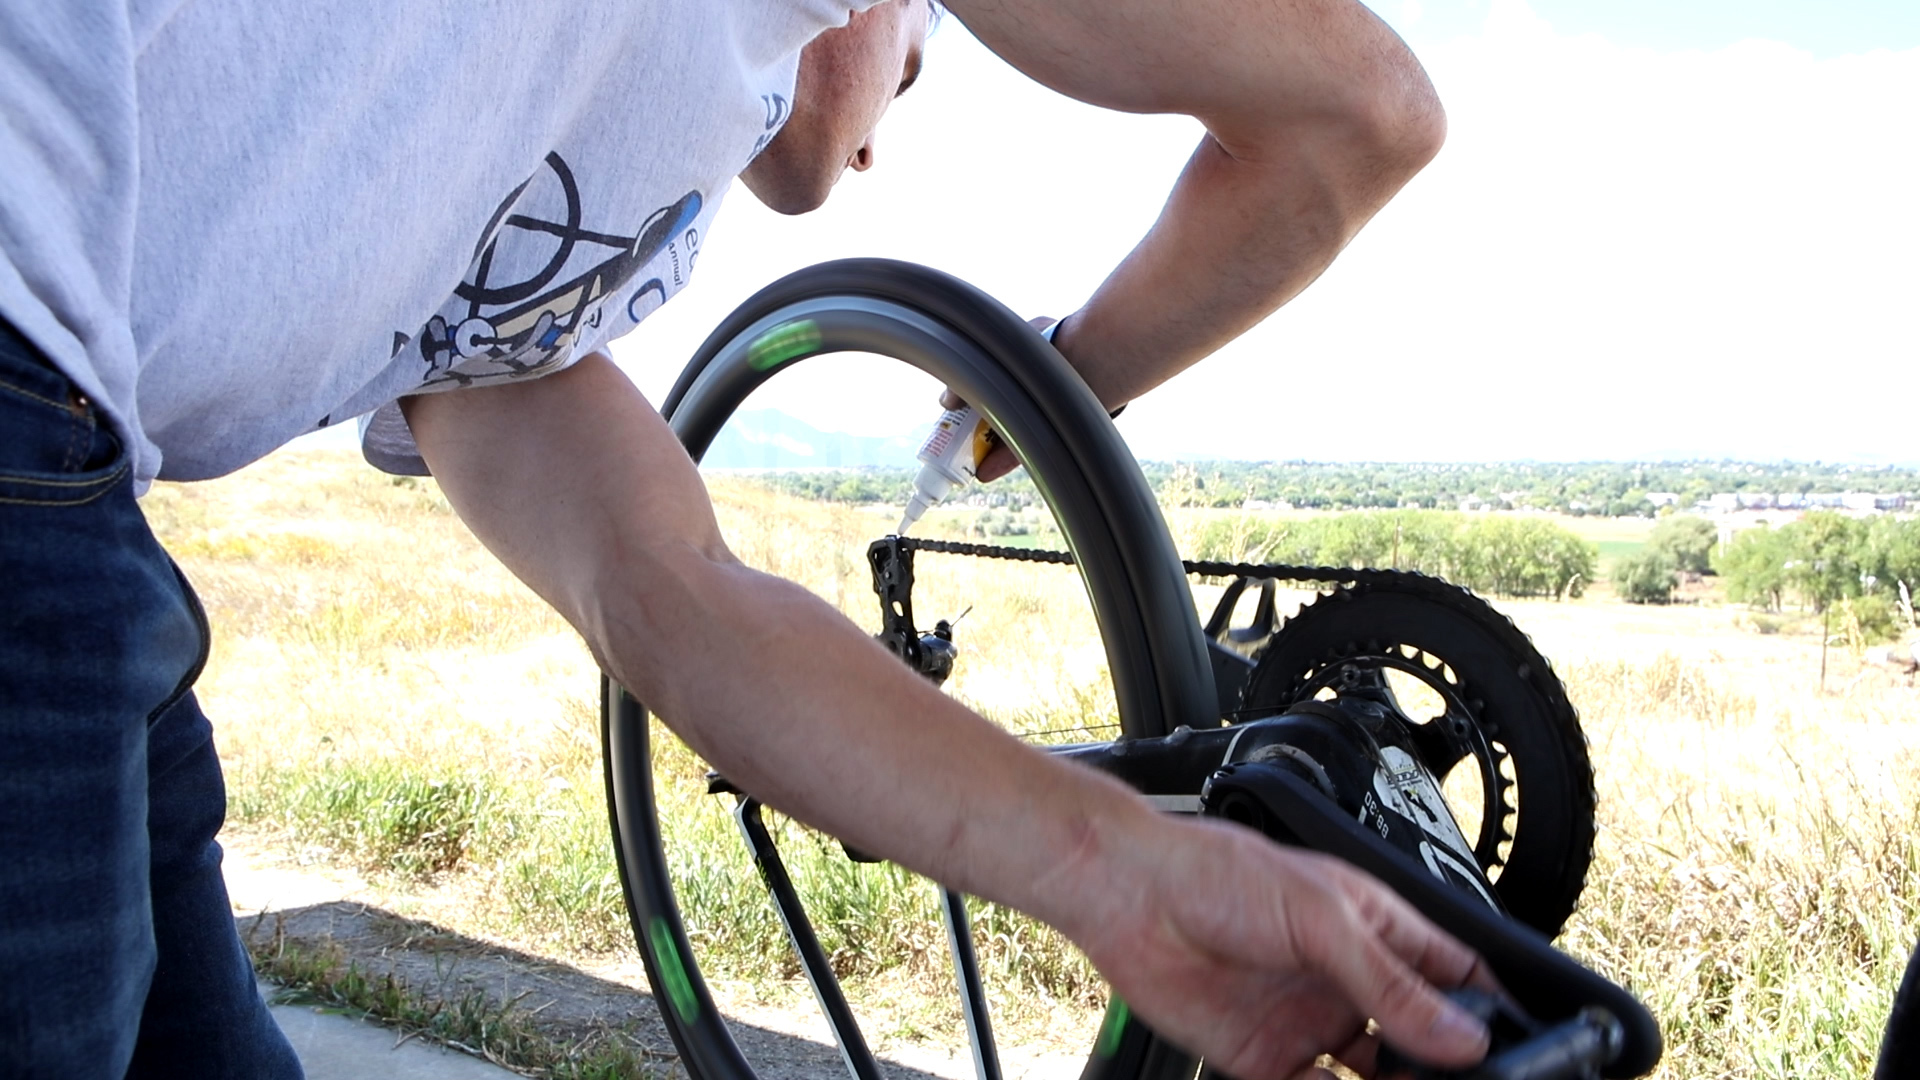 Brian Roders, Spinal Cord Injury and Traumatic Brain Injury Patient at Craig Hospital, Tuning His Bicycle